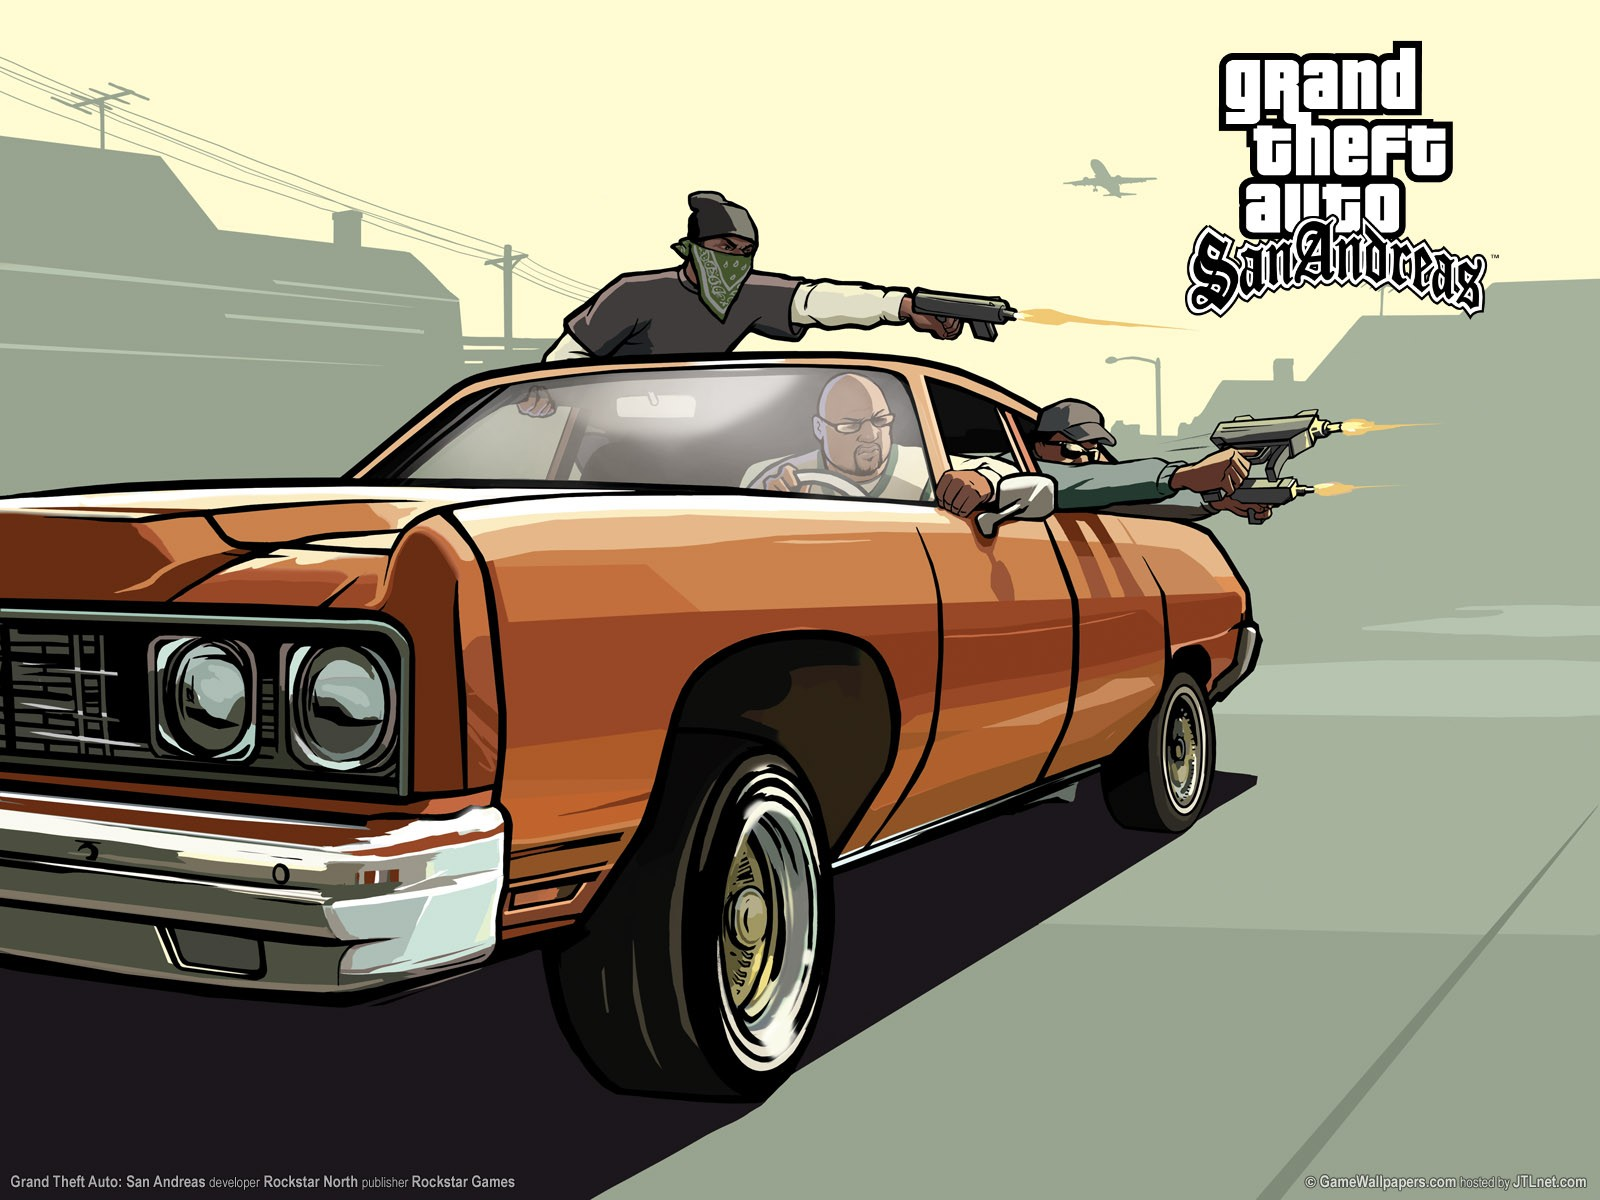 Wallpaper gta san andreas gta 5 gta san andreas gta san andreas bike